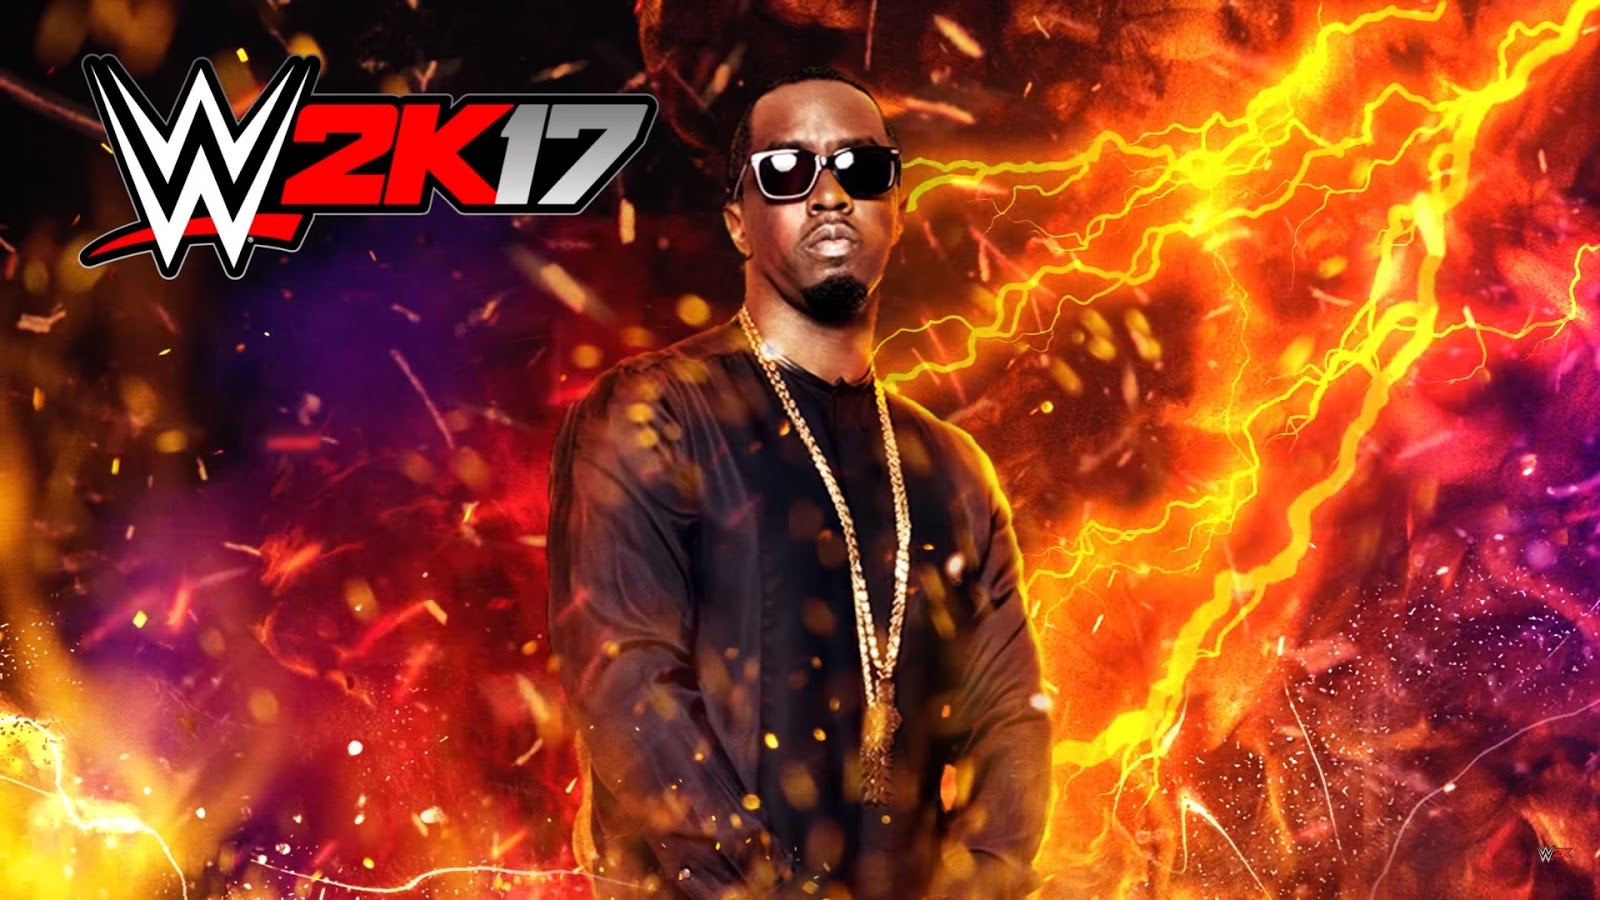 Wwe 2k17 Hd Wallpapers Read Games Review Play Online Games